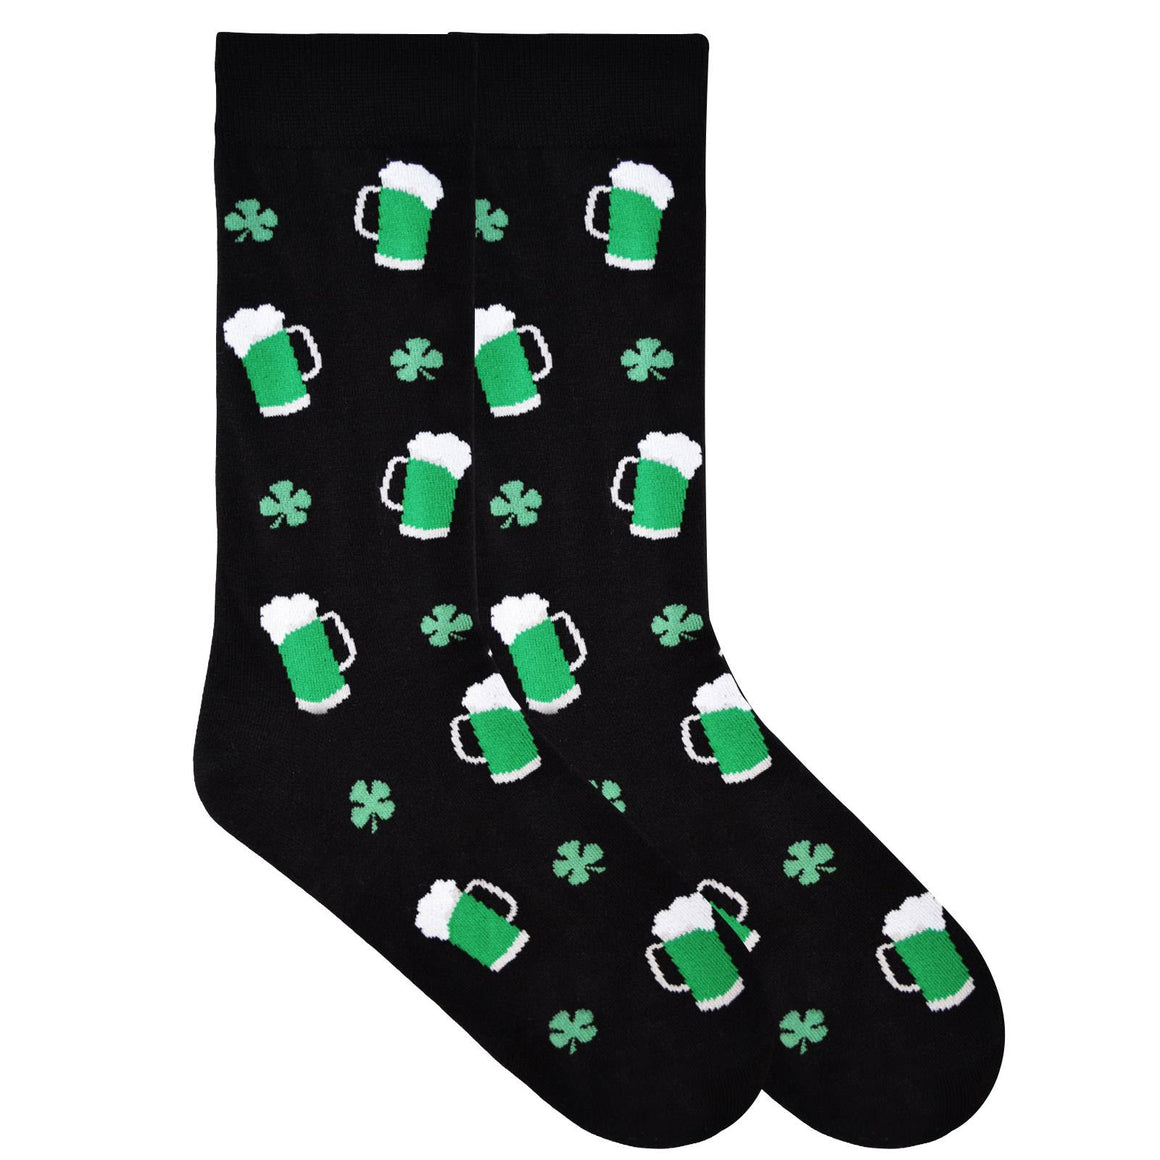 Men's Green Beer Socks - XEJRA